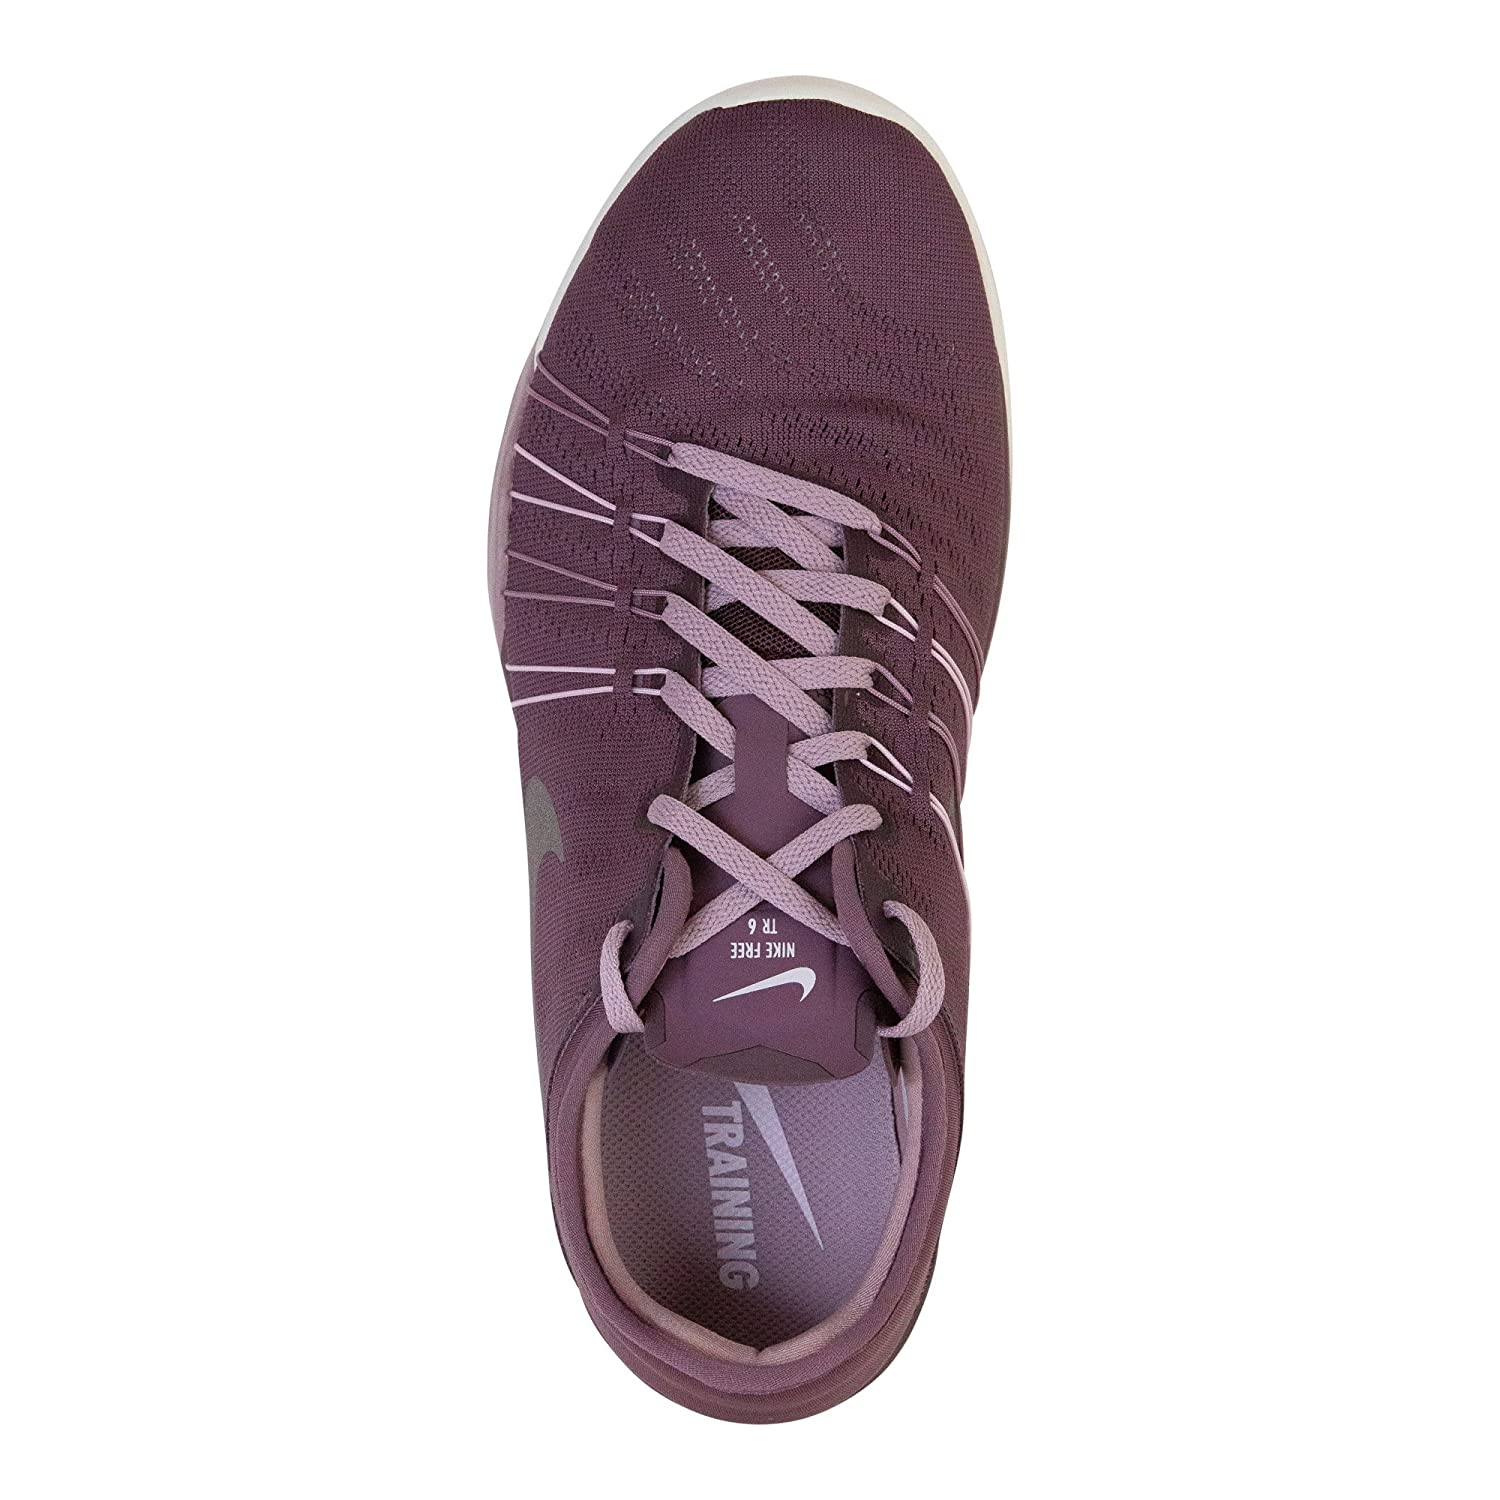 Womens Nike Free B01DL1YEJW TR 6 Training Shoes B01DL1YEJW Free 6.5 B(M) US|Purple Shade Bleached Lilac 502 7ee546